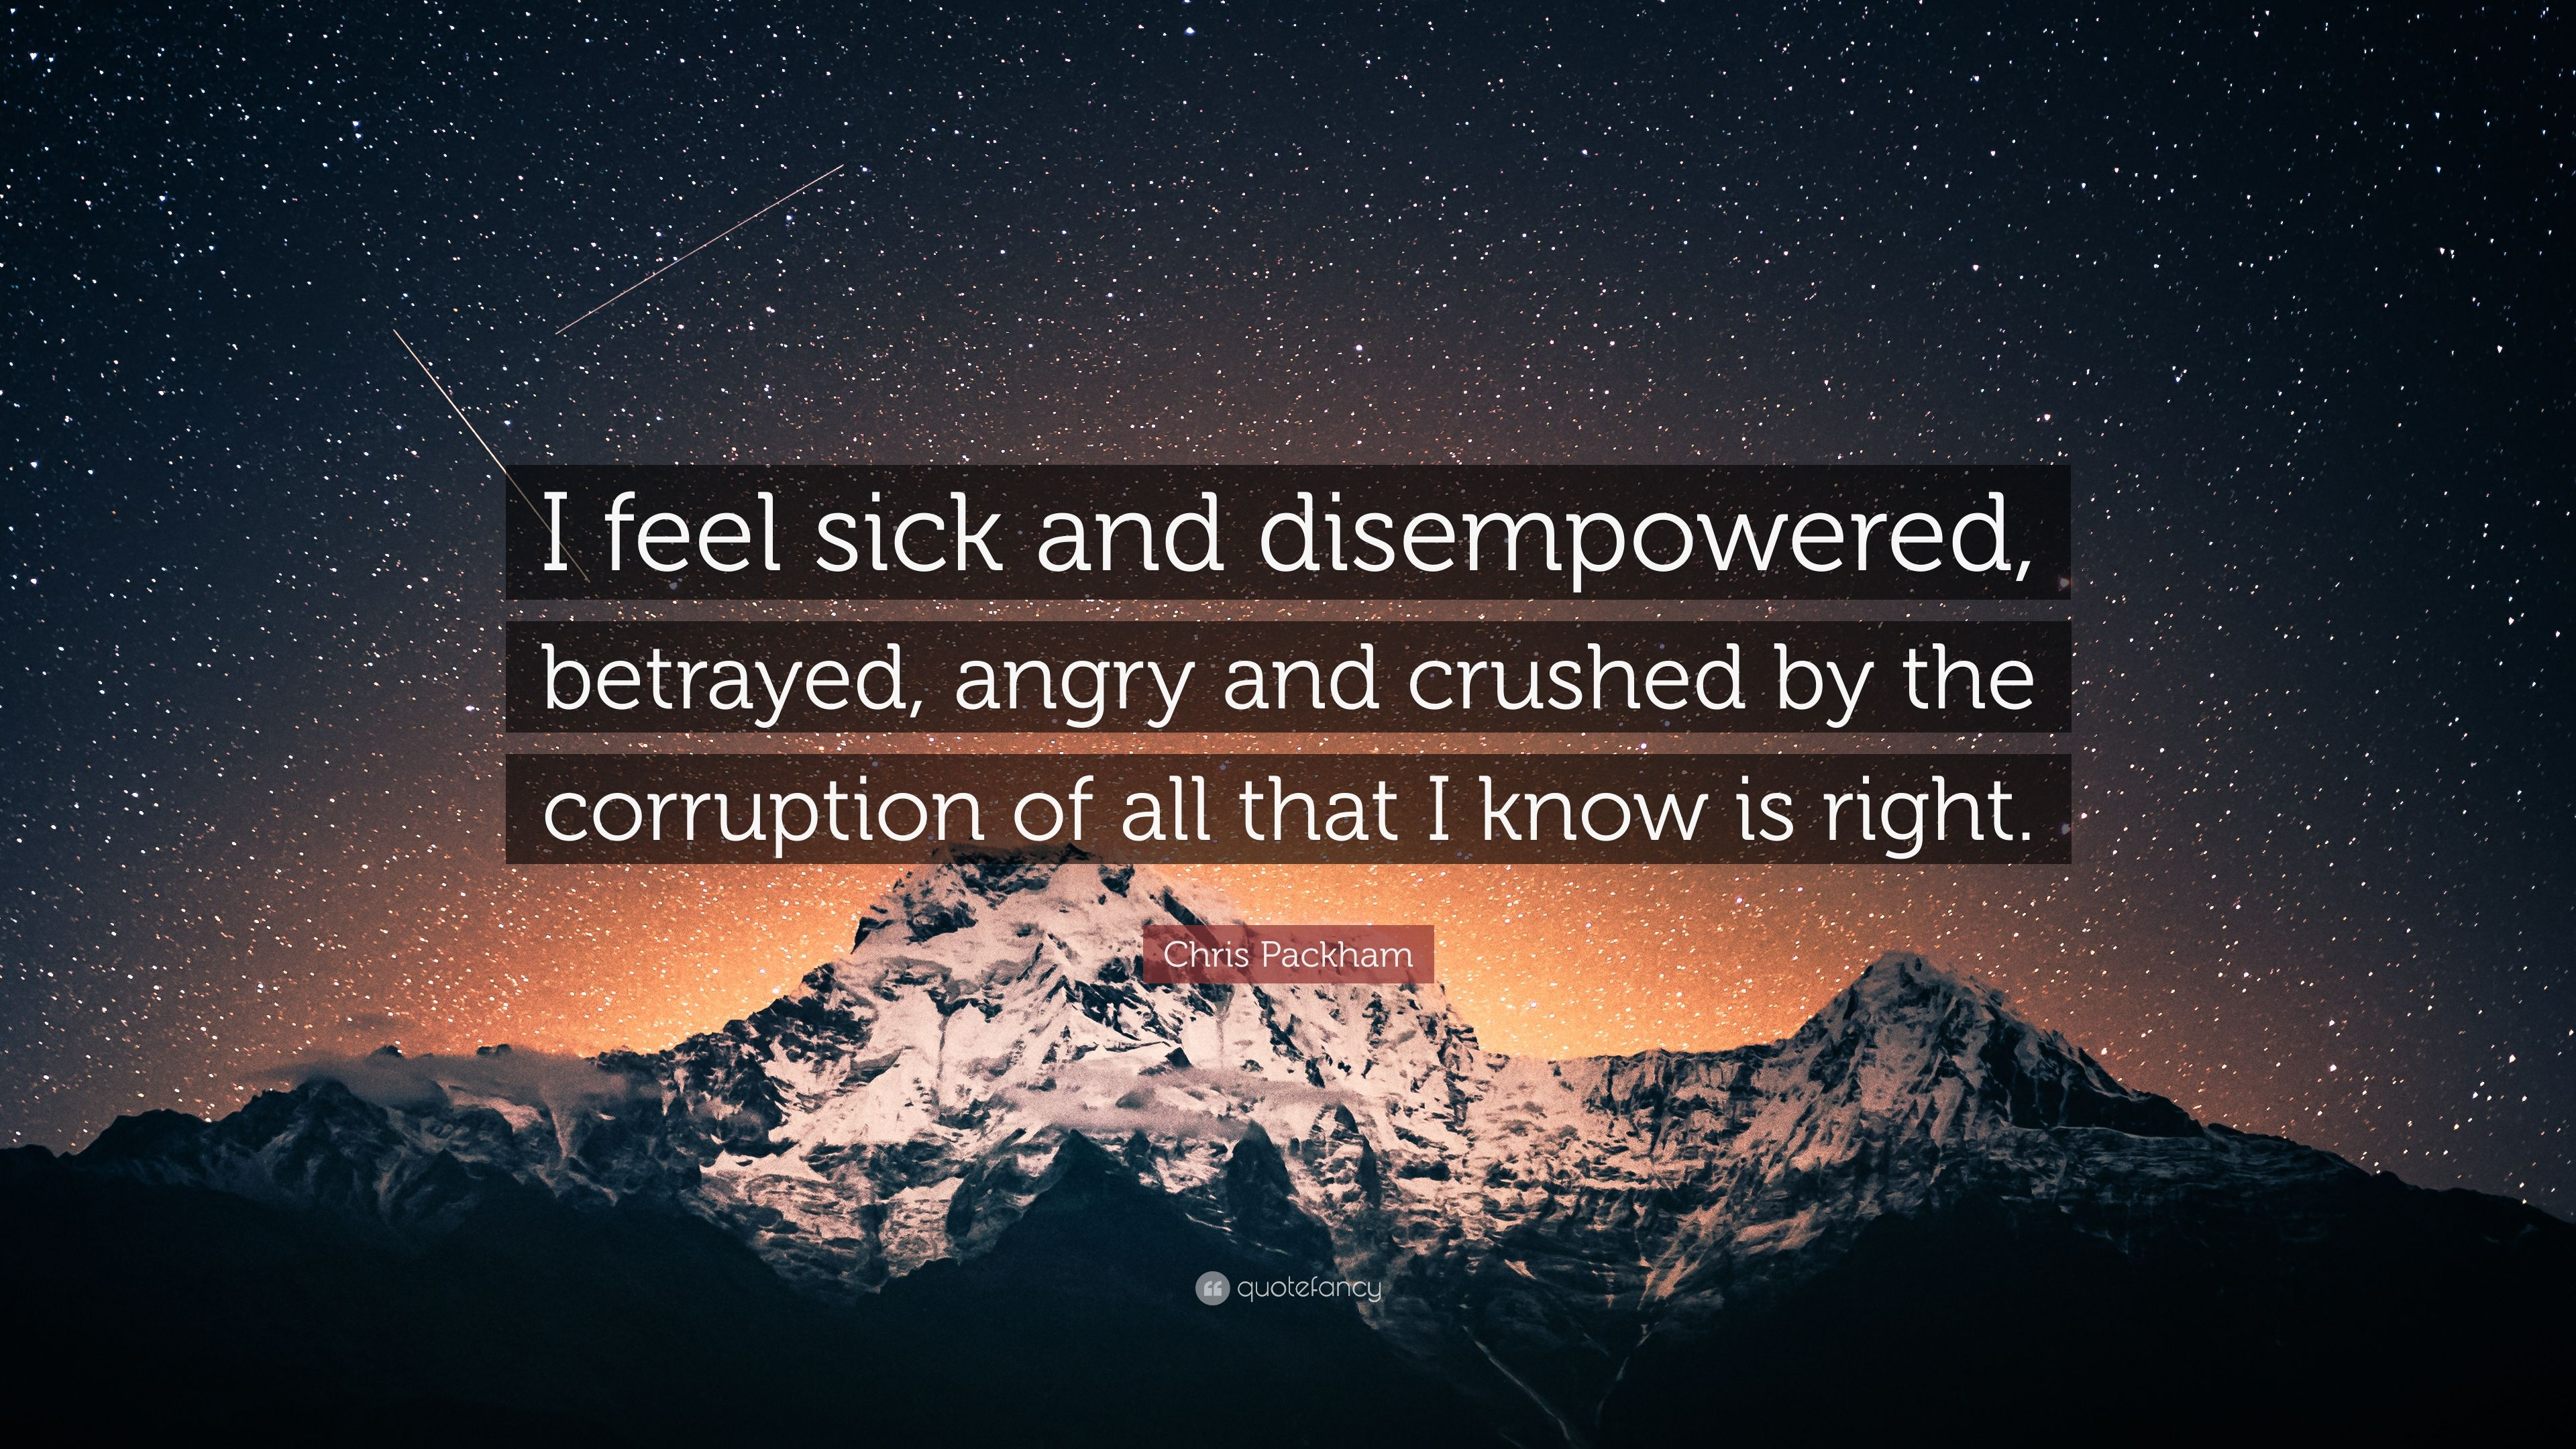 Chris Packham Quote I Feel Sick And Disempowered Betrayed Angry Crushed